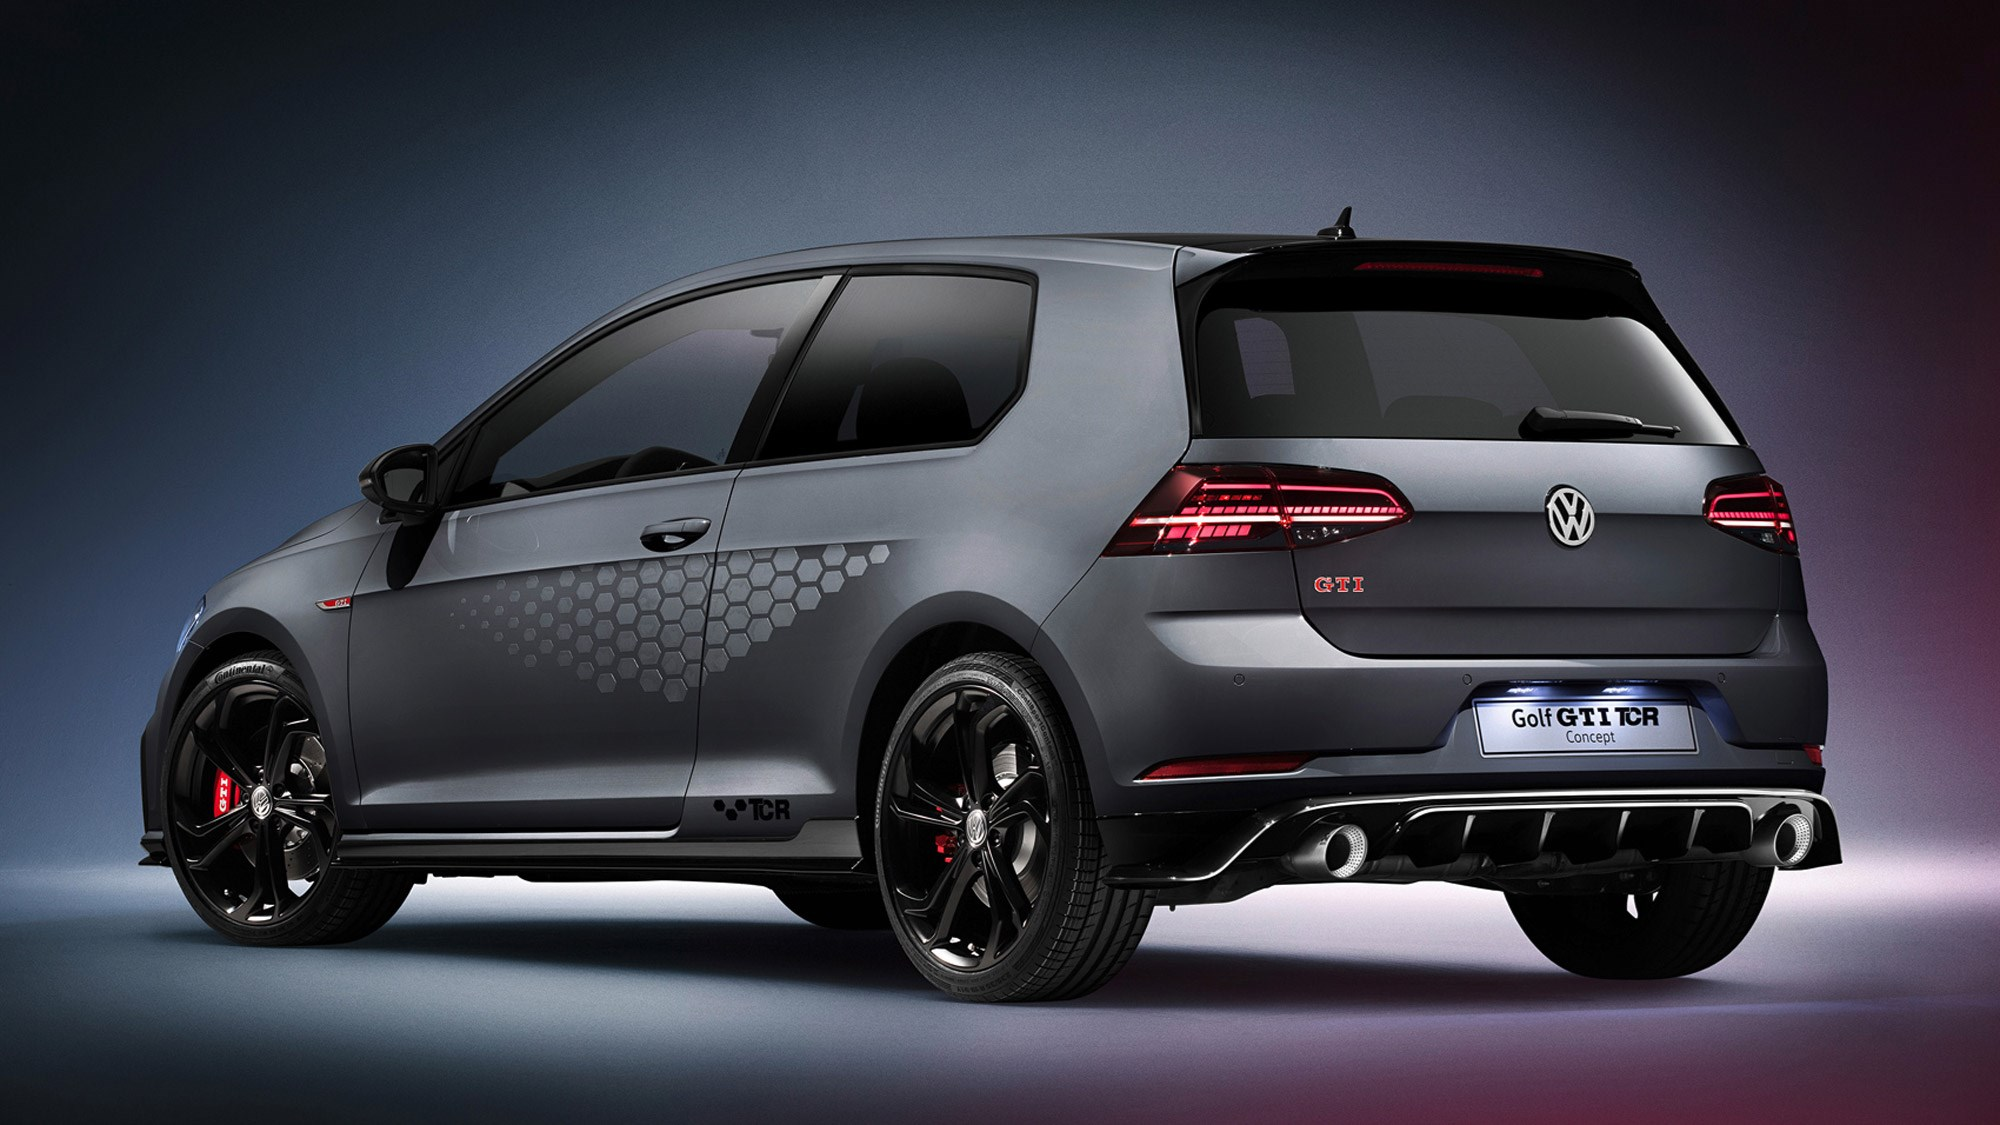 vw golf gti tcr fastest road legal golf gets official. Black Bedroom Furniture Sets. Home Design Ideas